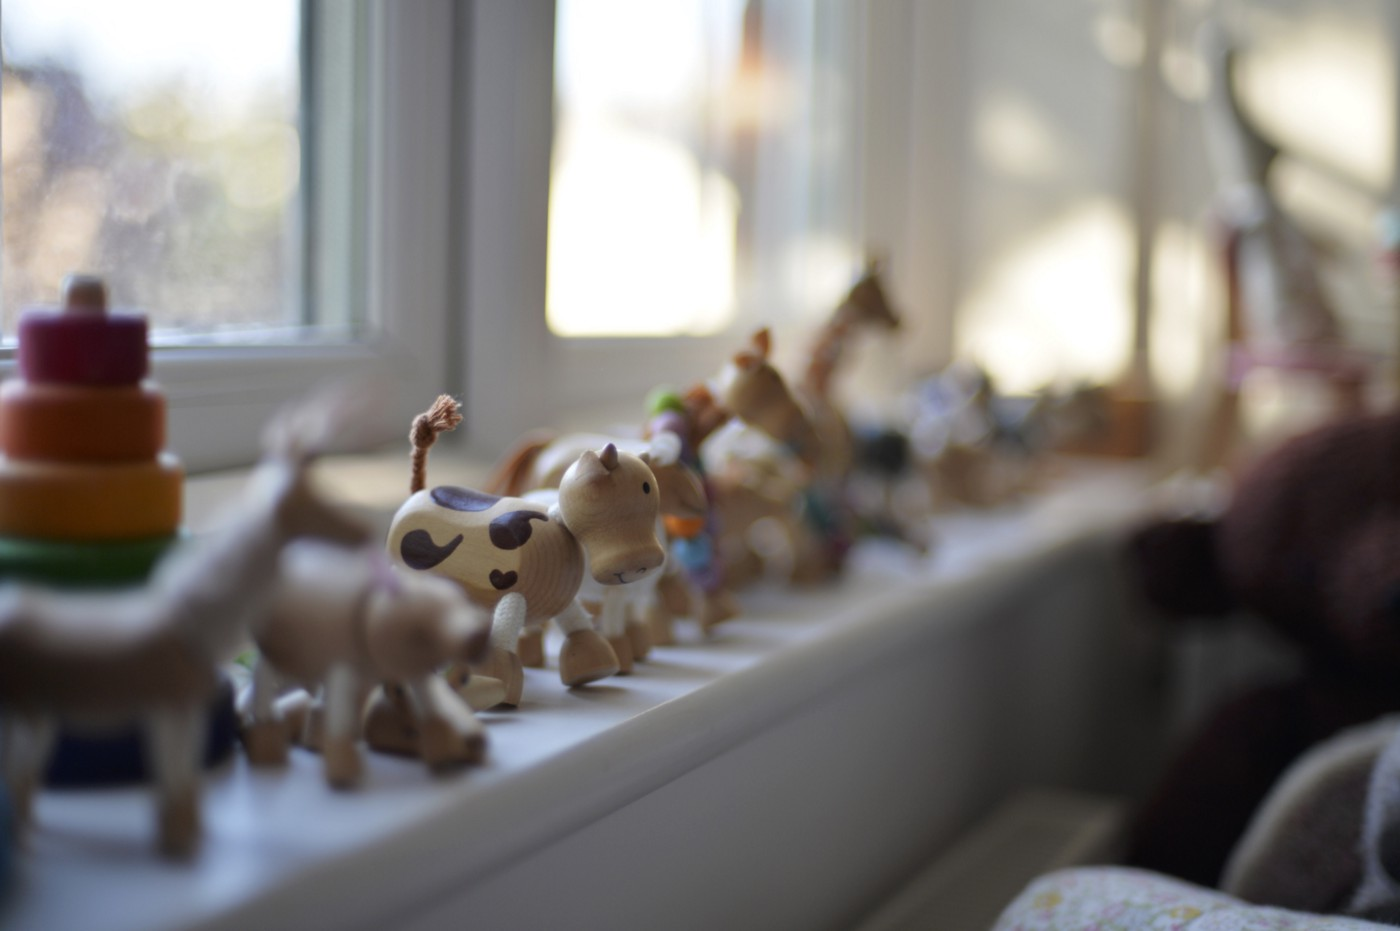 A photo of wooden animal toys lined up on a windowsill.